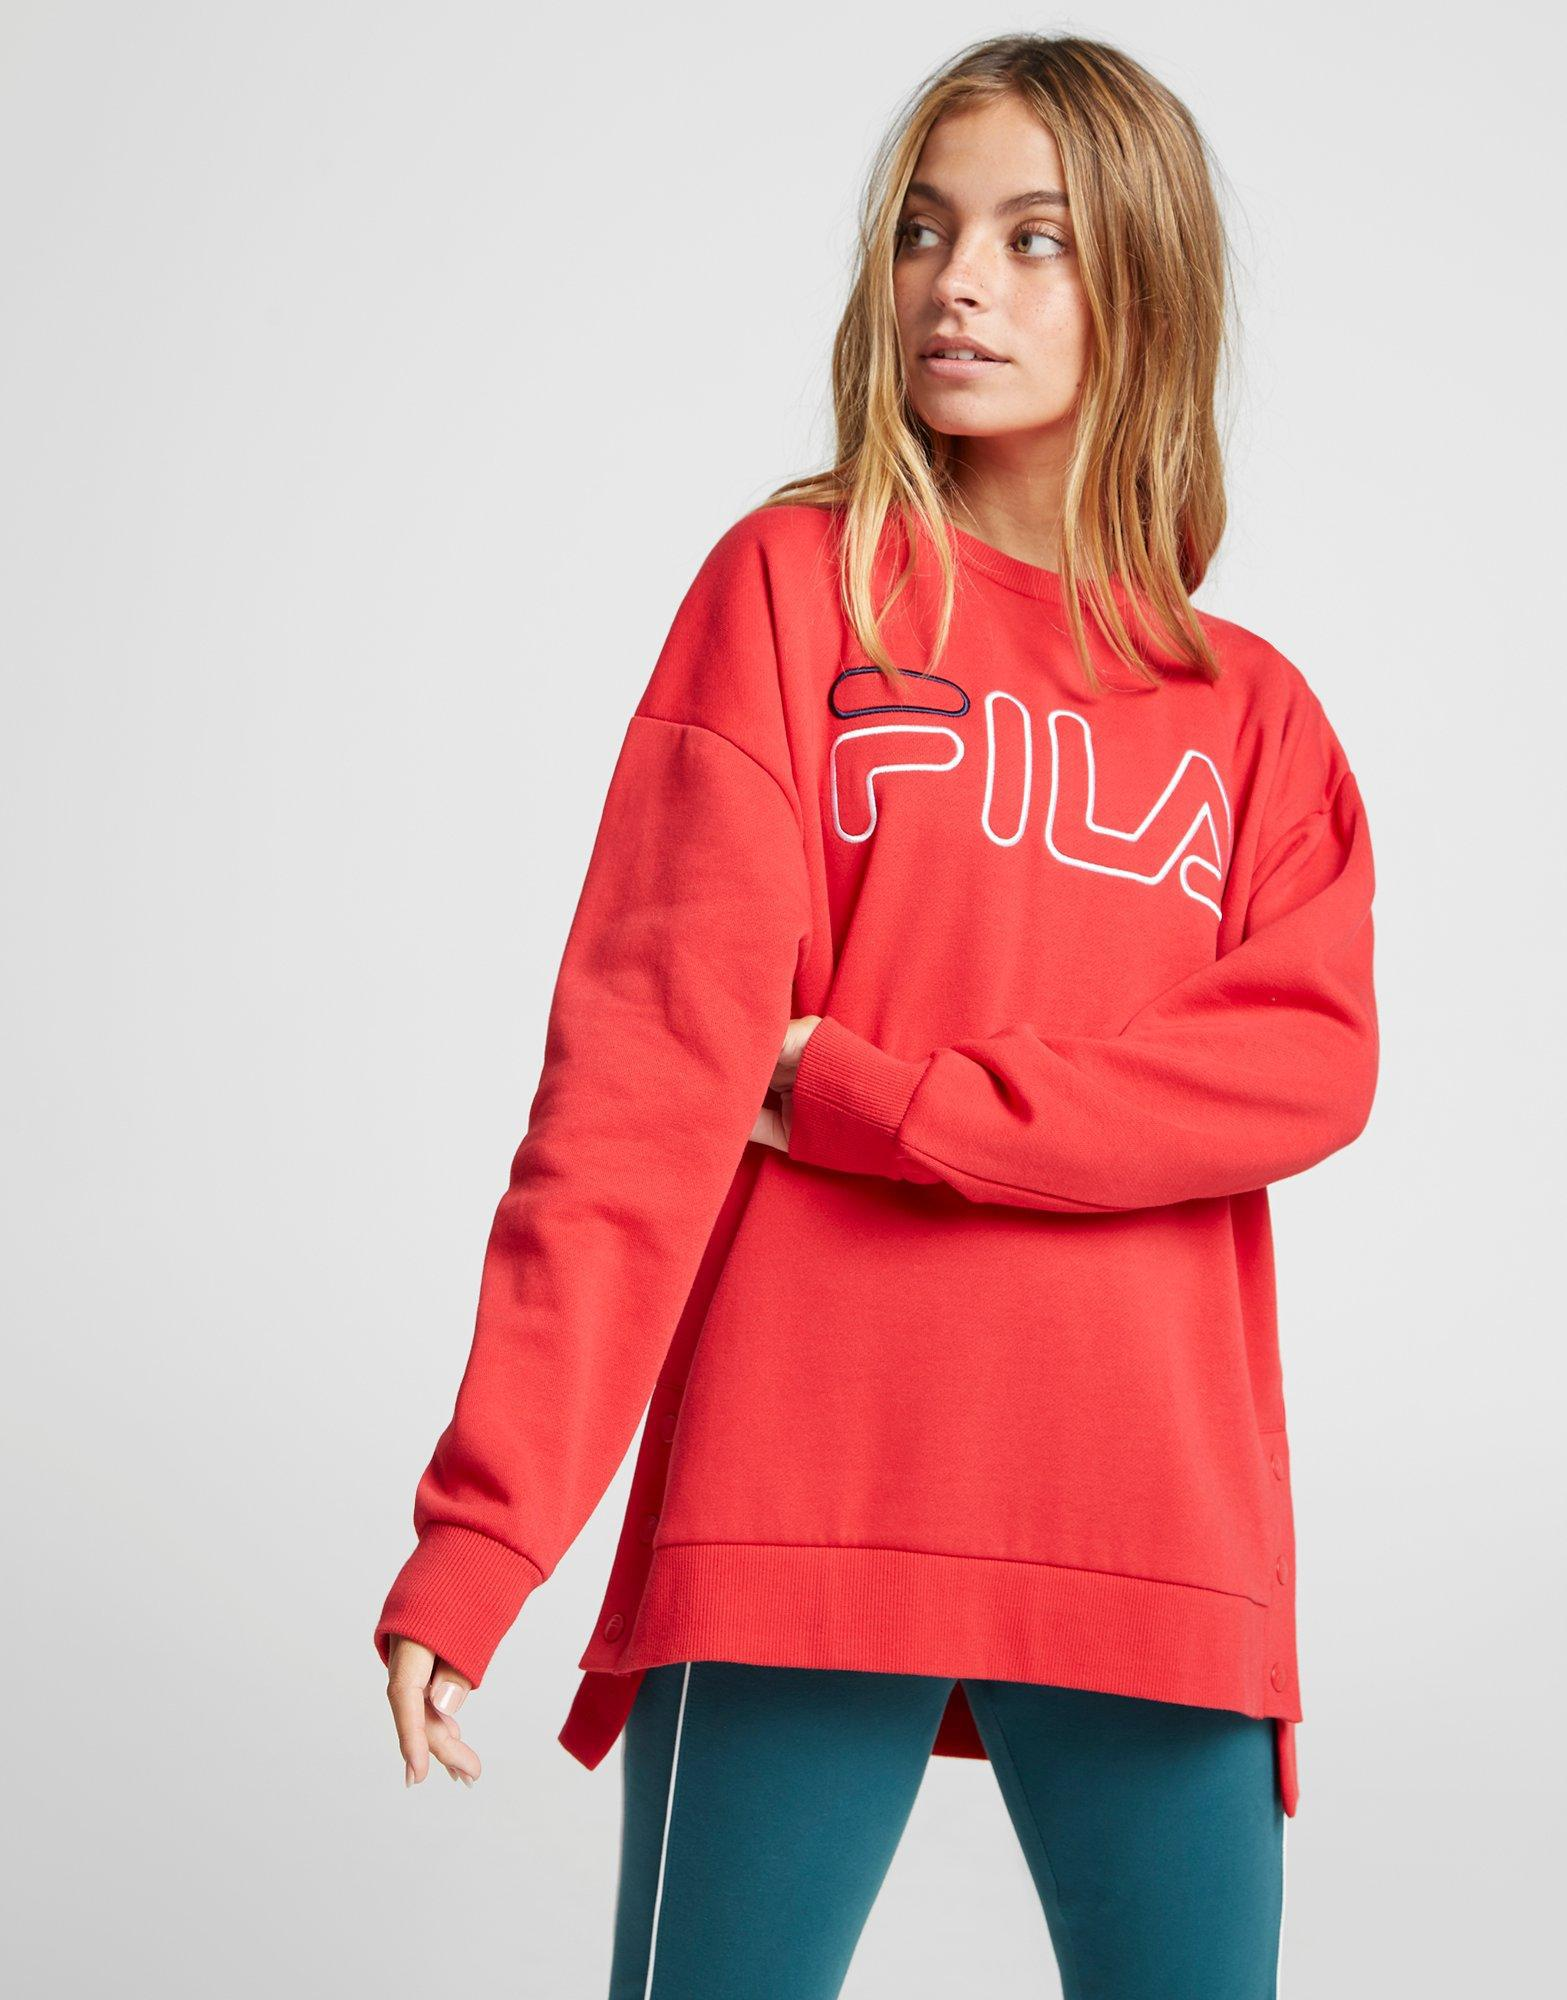 d2e767a422fc Fila Logo Popper Crew Sweatshirt in Red - Lyst